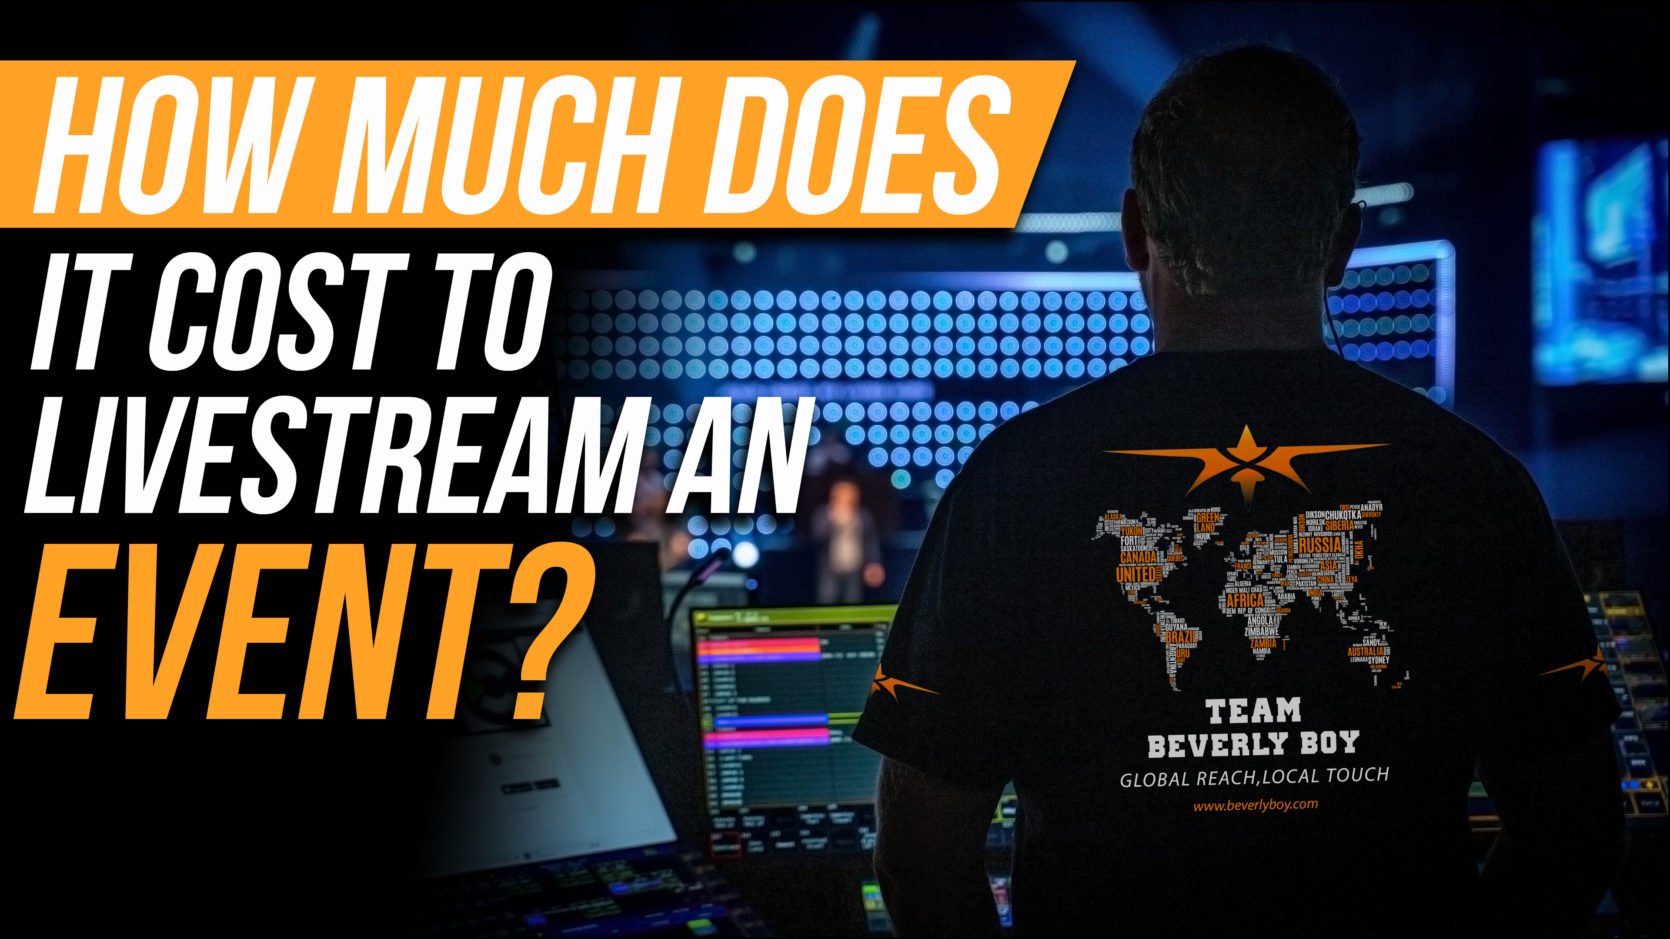 How Much Does it Cost to Live Stream an Event